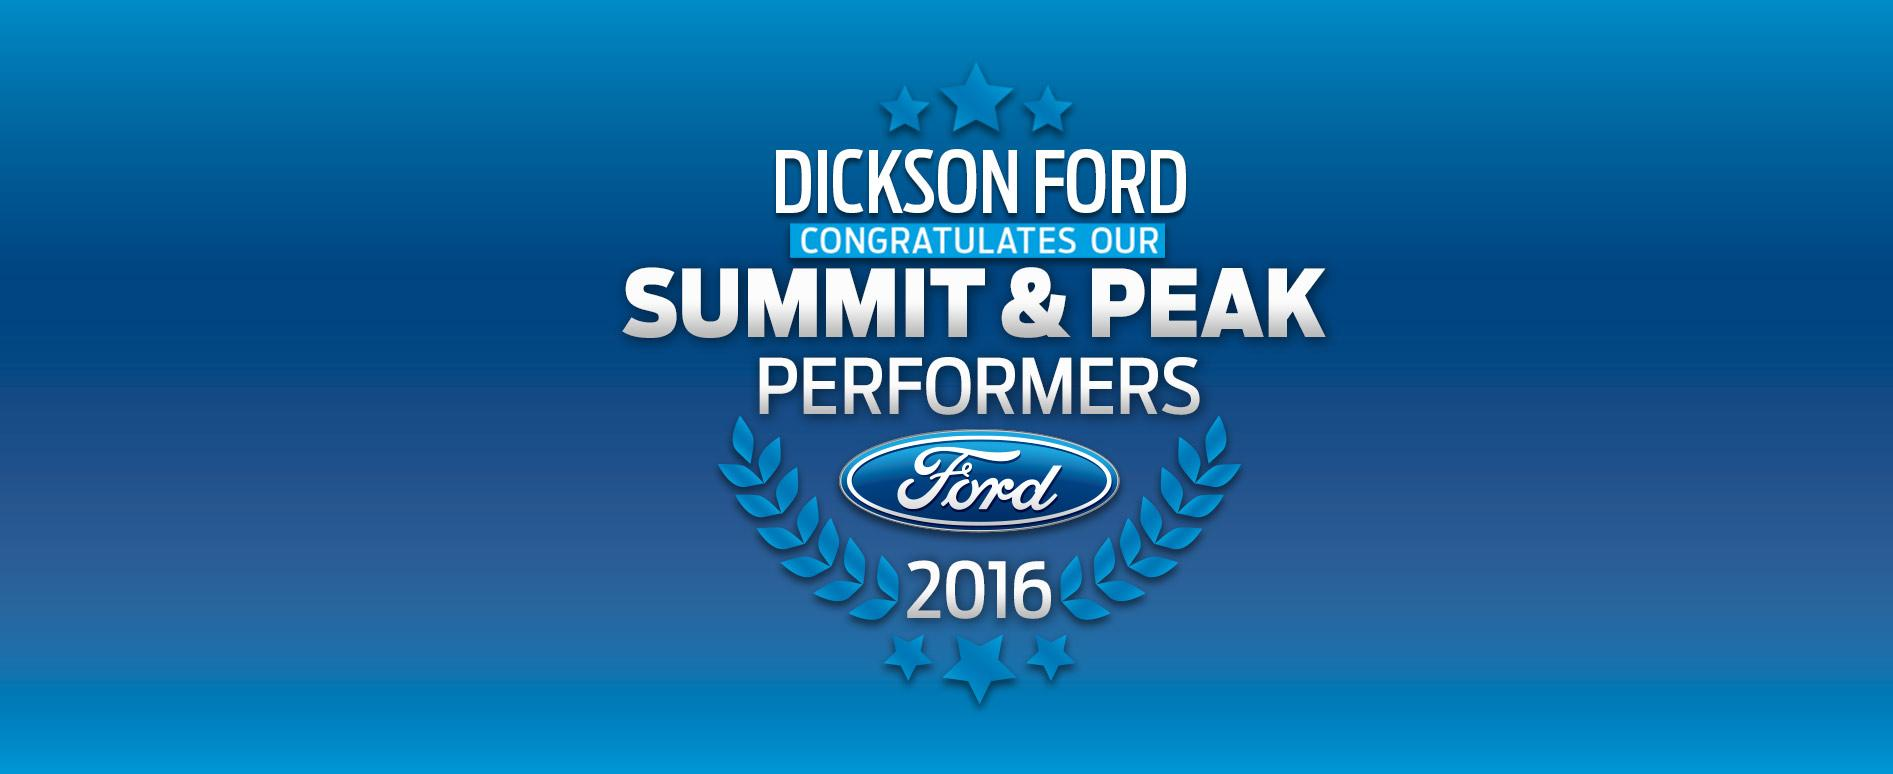 Dickson Ford - Summit & Peak Performers